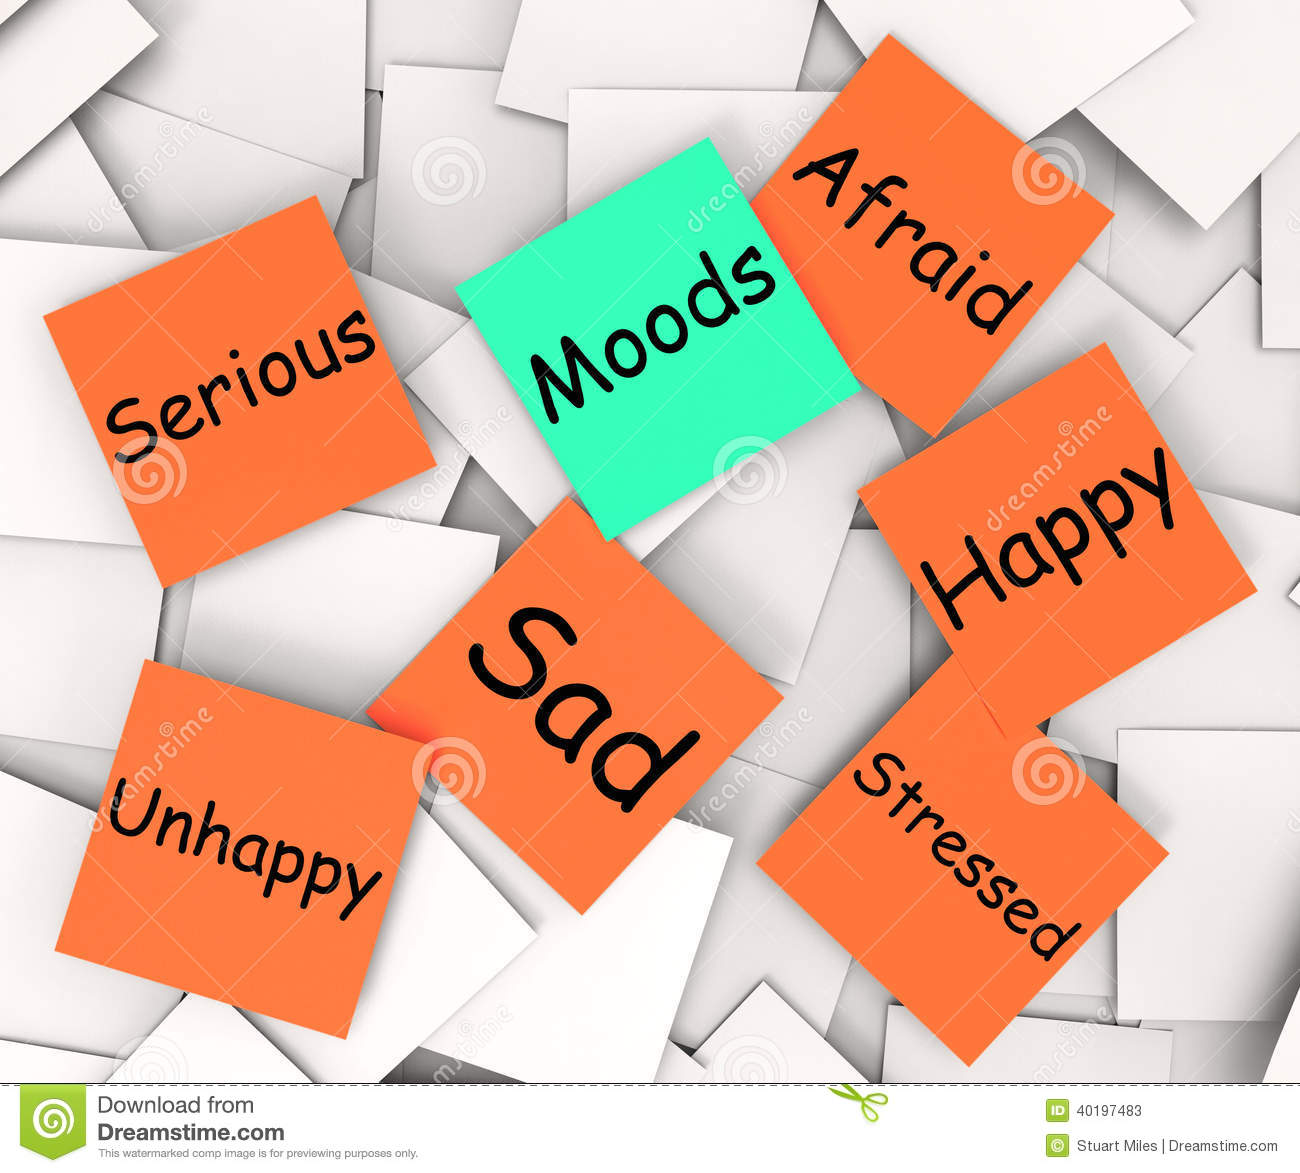 Moods Emotions Faces Many Variety Feelings Stock